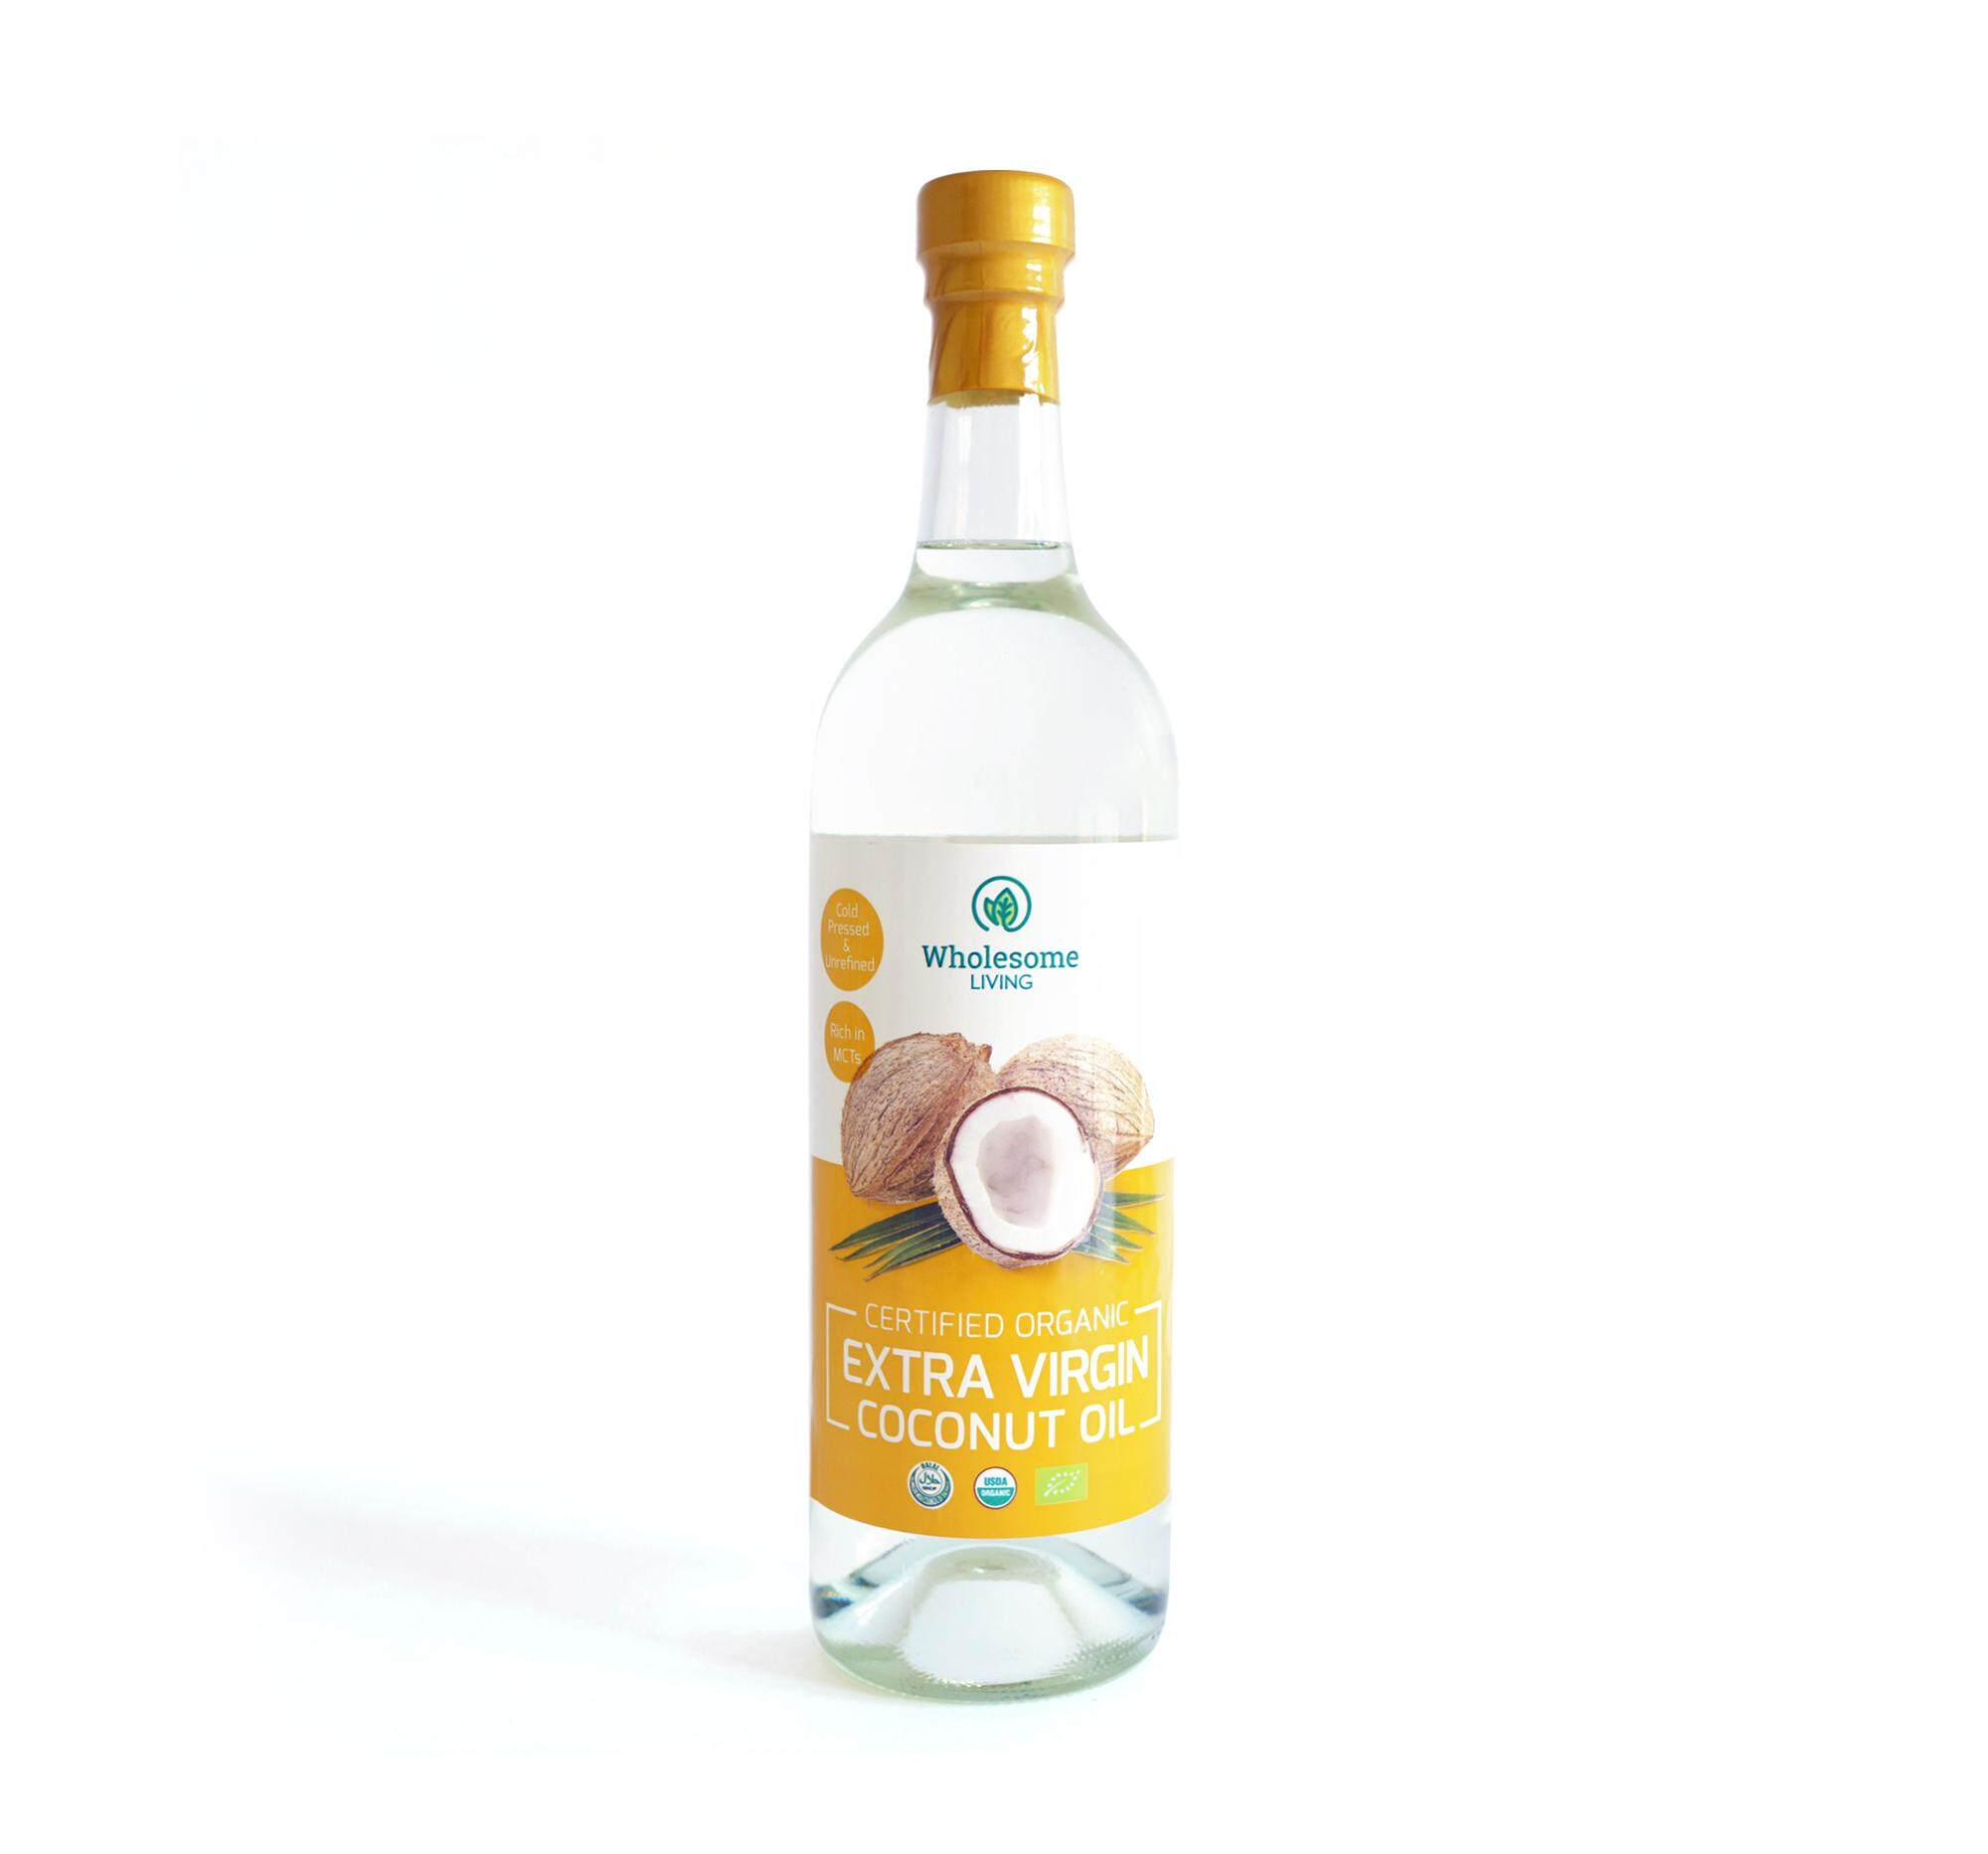 Wholesome Living Extra Virgin Coconut Oil 750ml